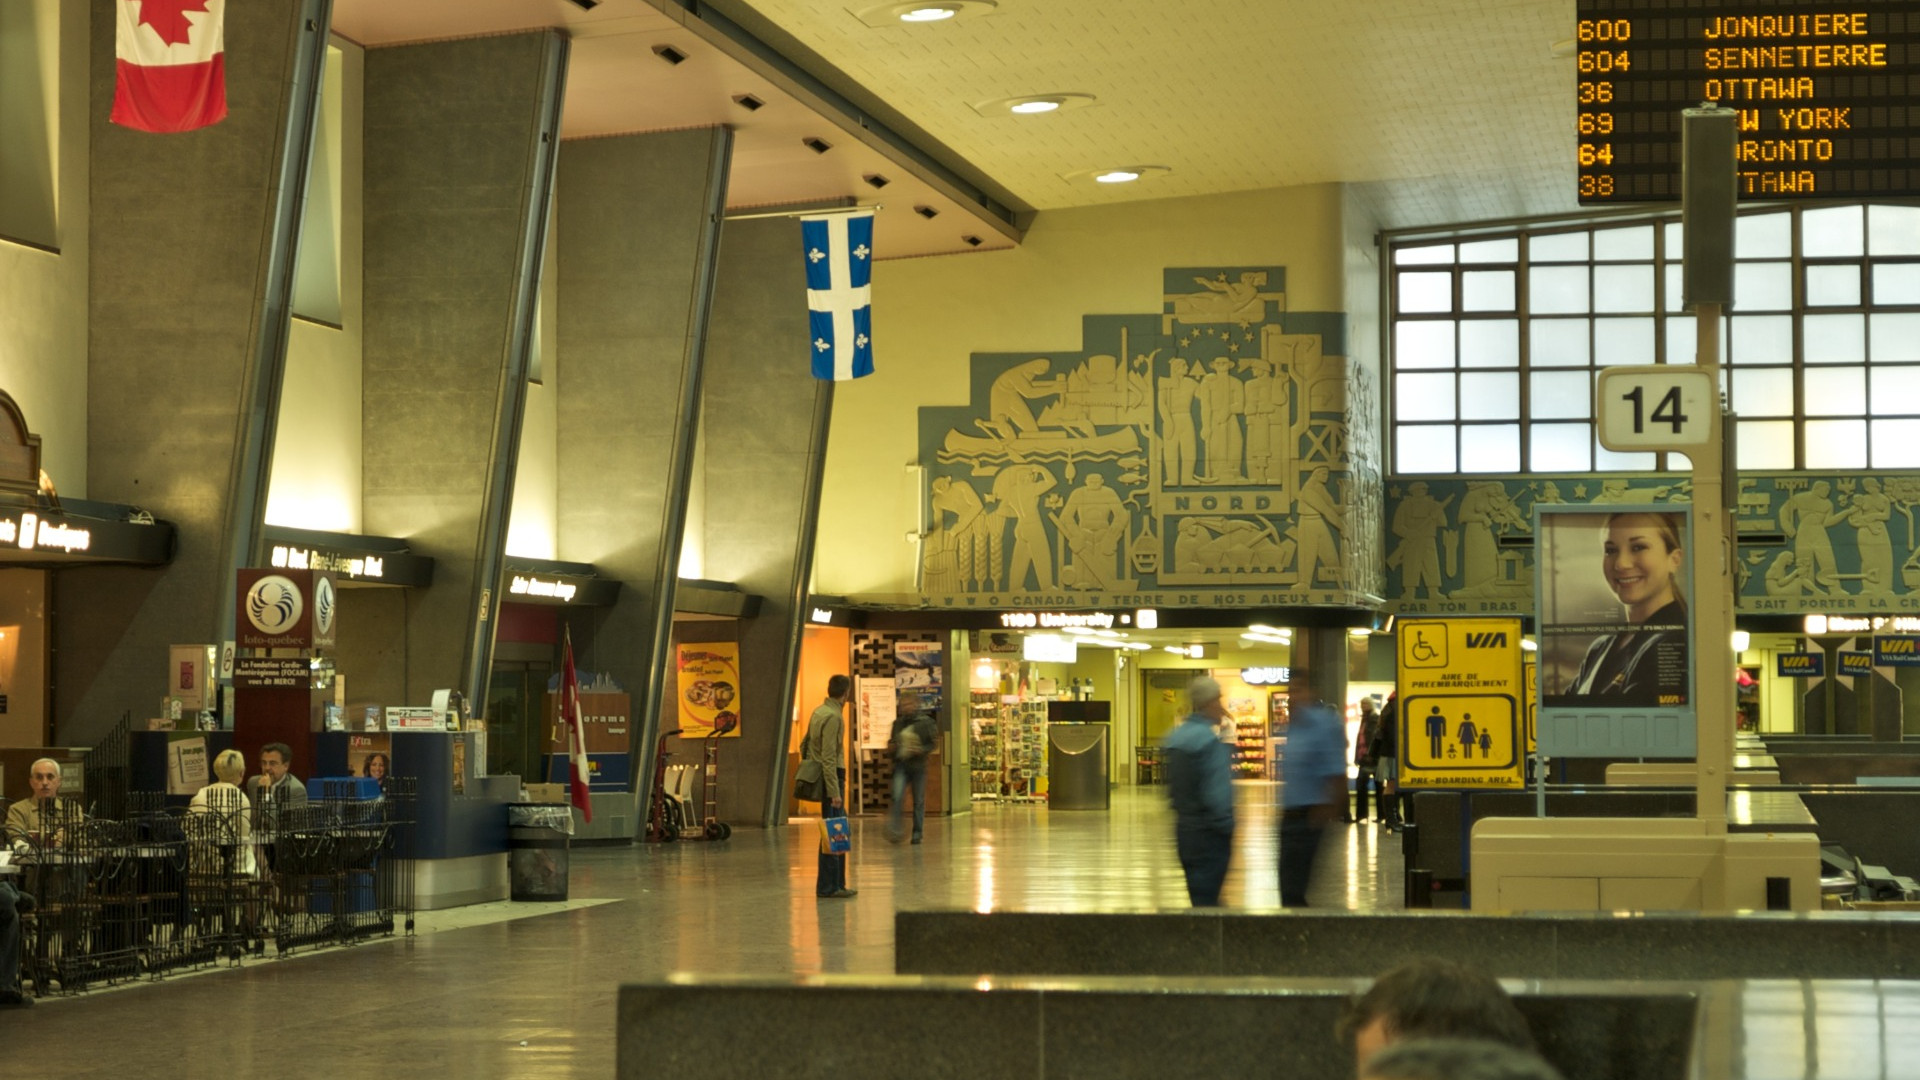 Montreal Station